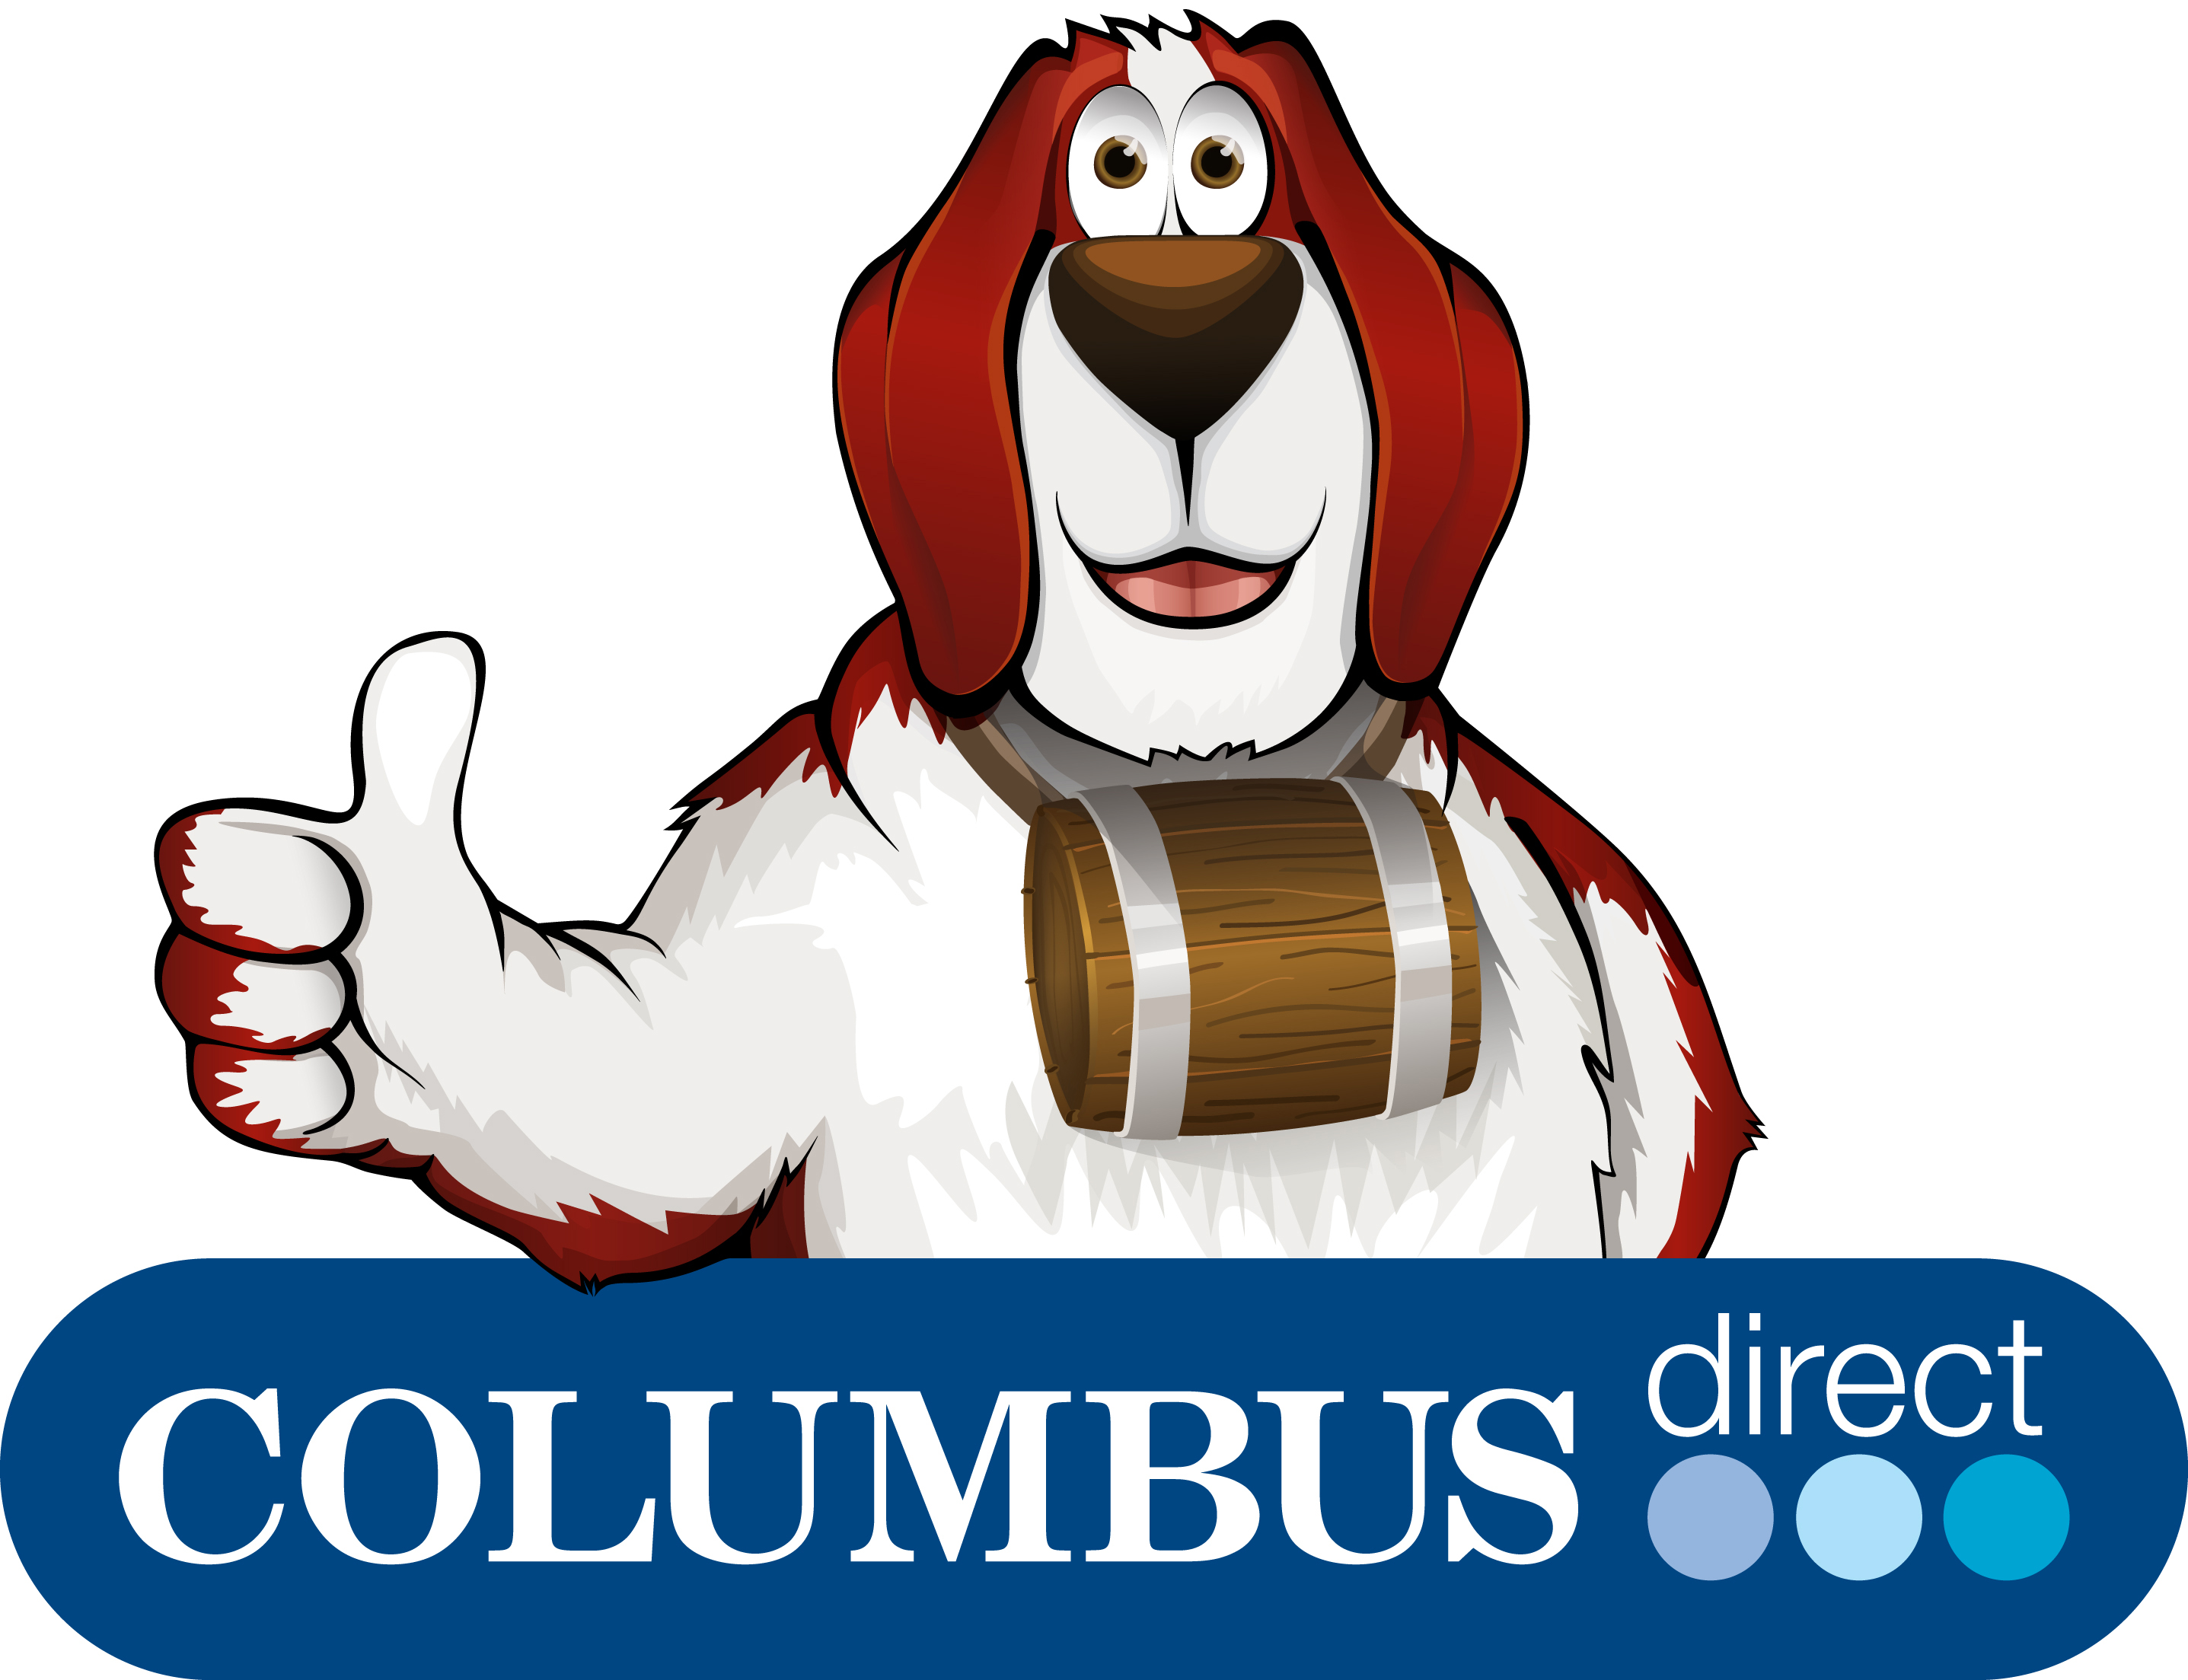 Columbus Travel Insurance Dubai, UAE – +44 (0) 870 905 8545